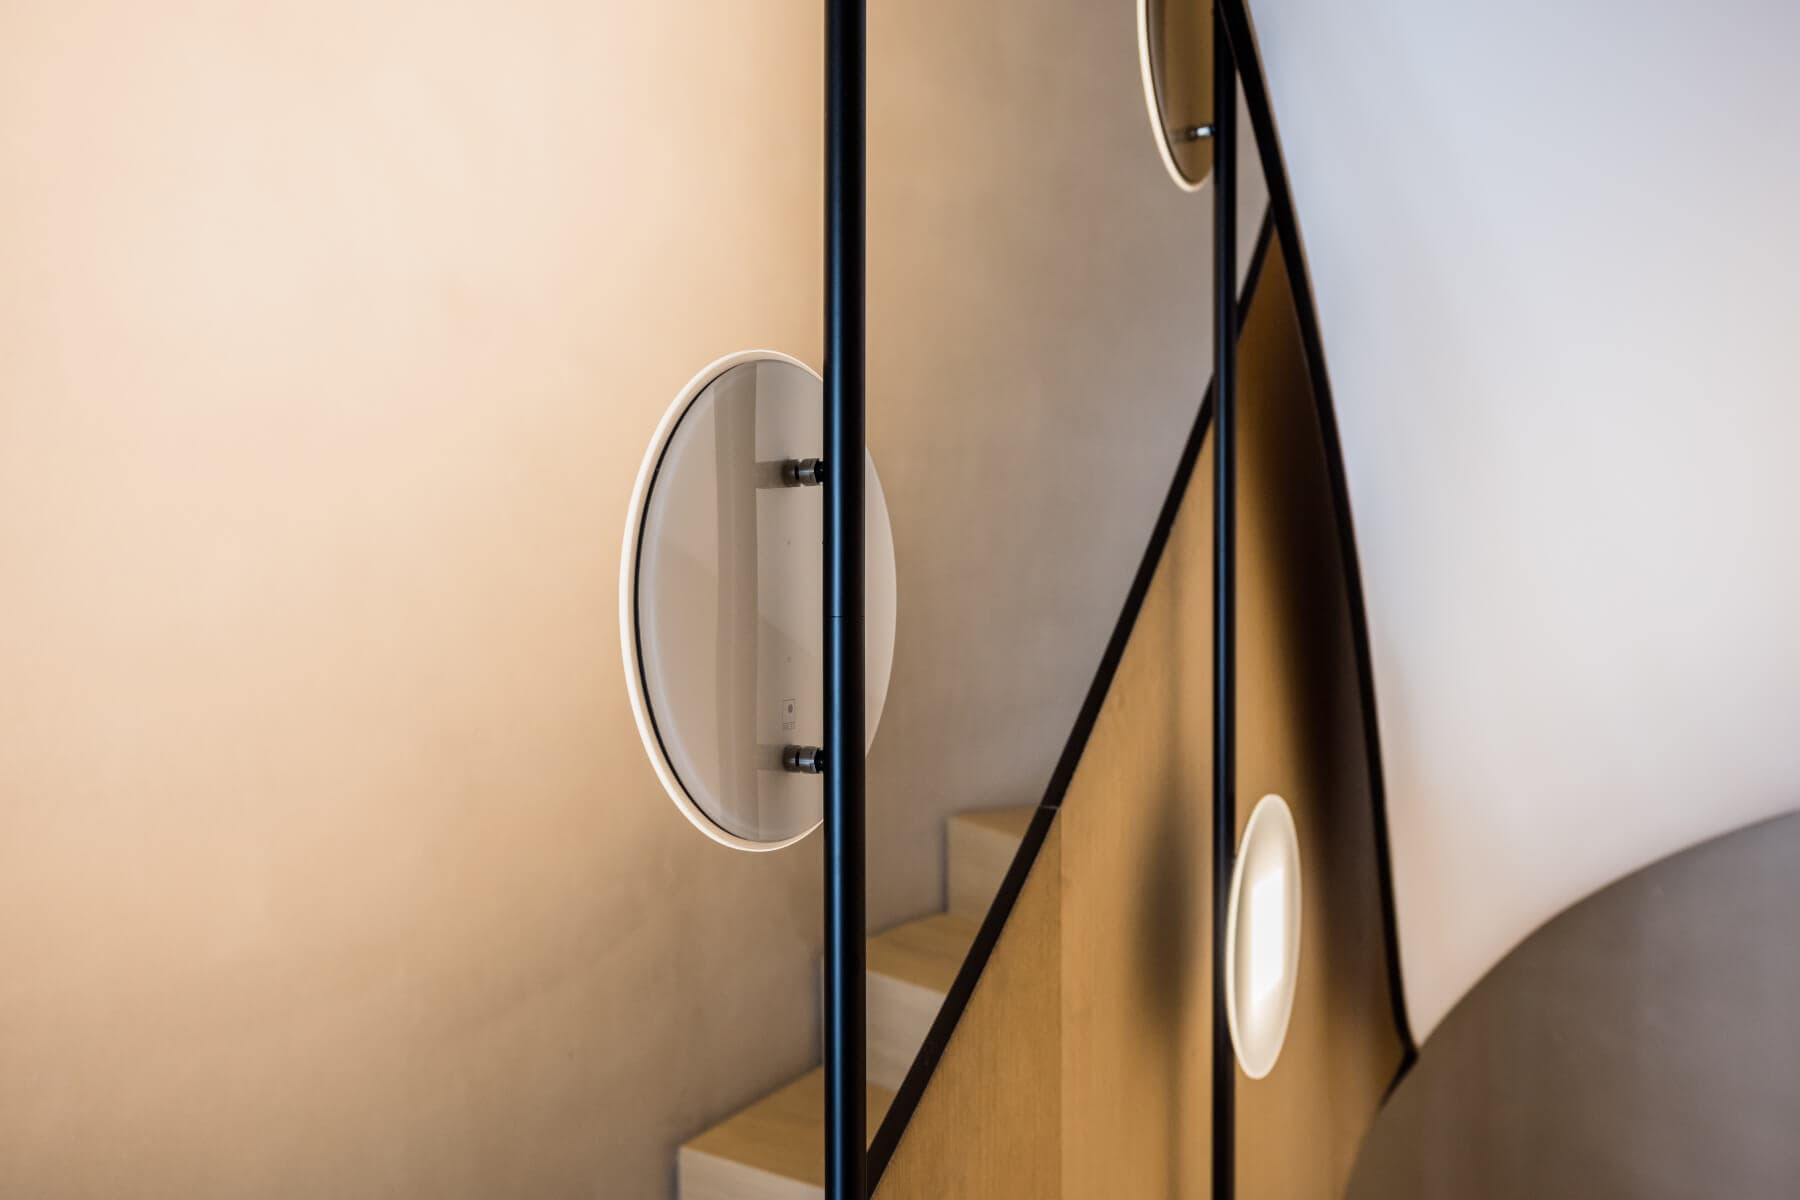 OLED luminaires at stairwell